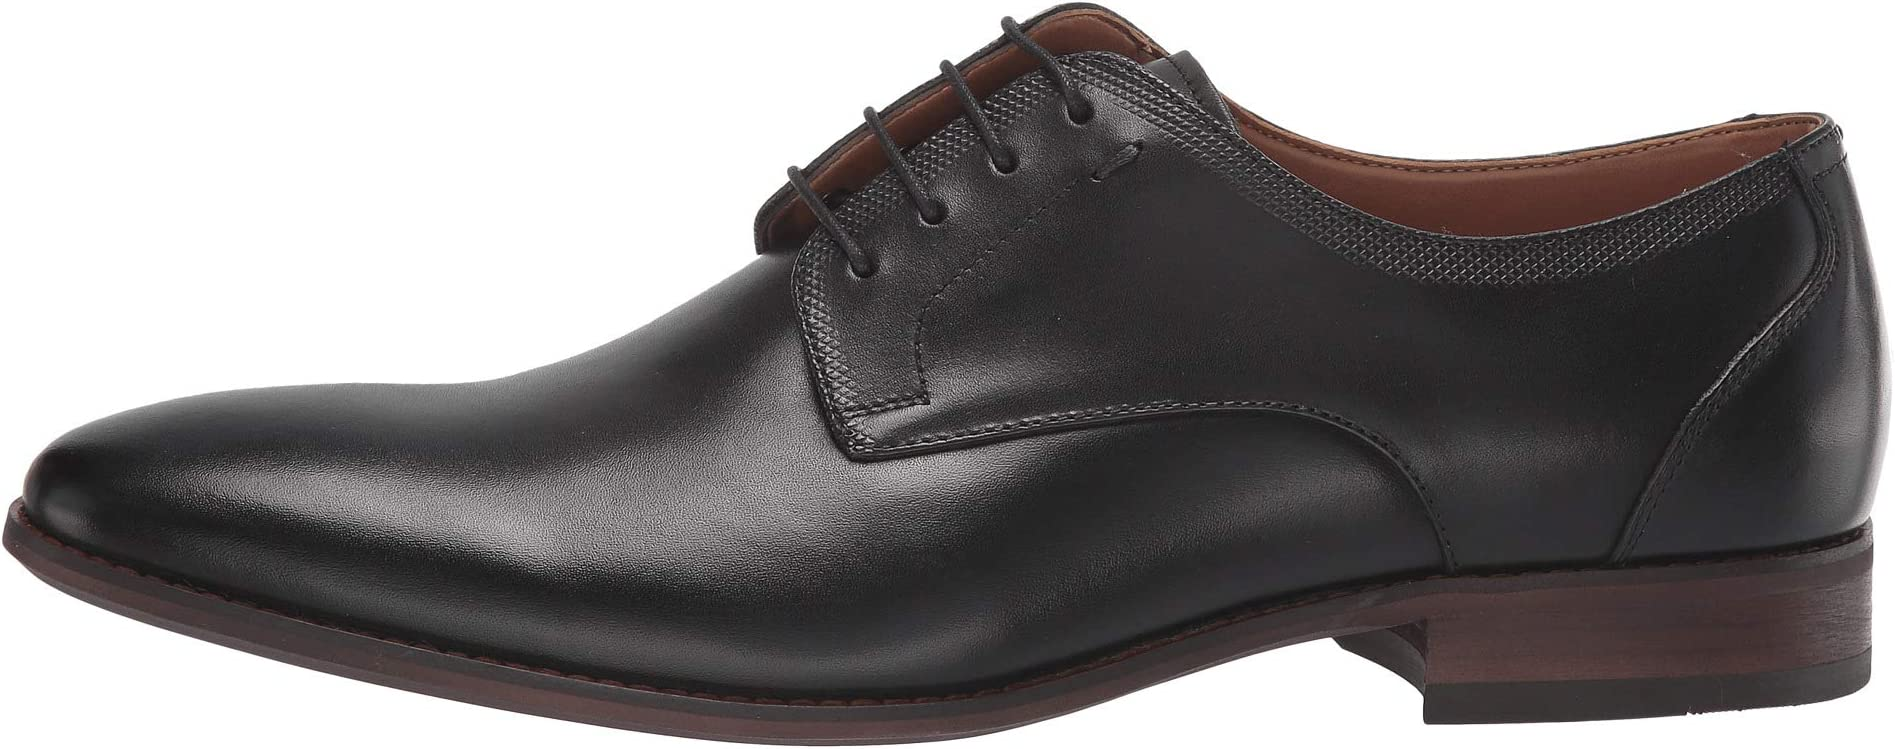 Steve Madden Dasher Oxford | Men's shoes | 2020 Newest